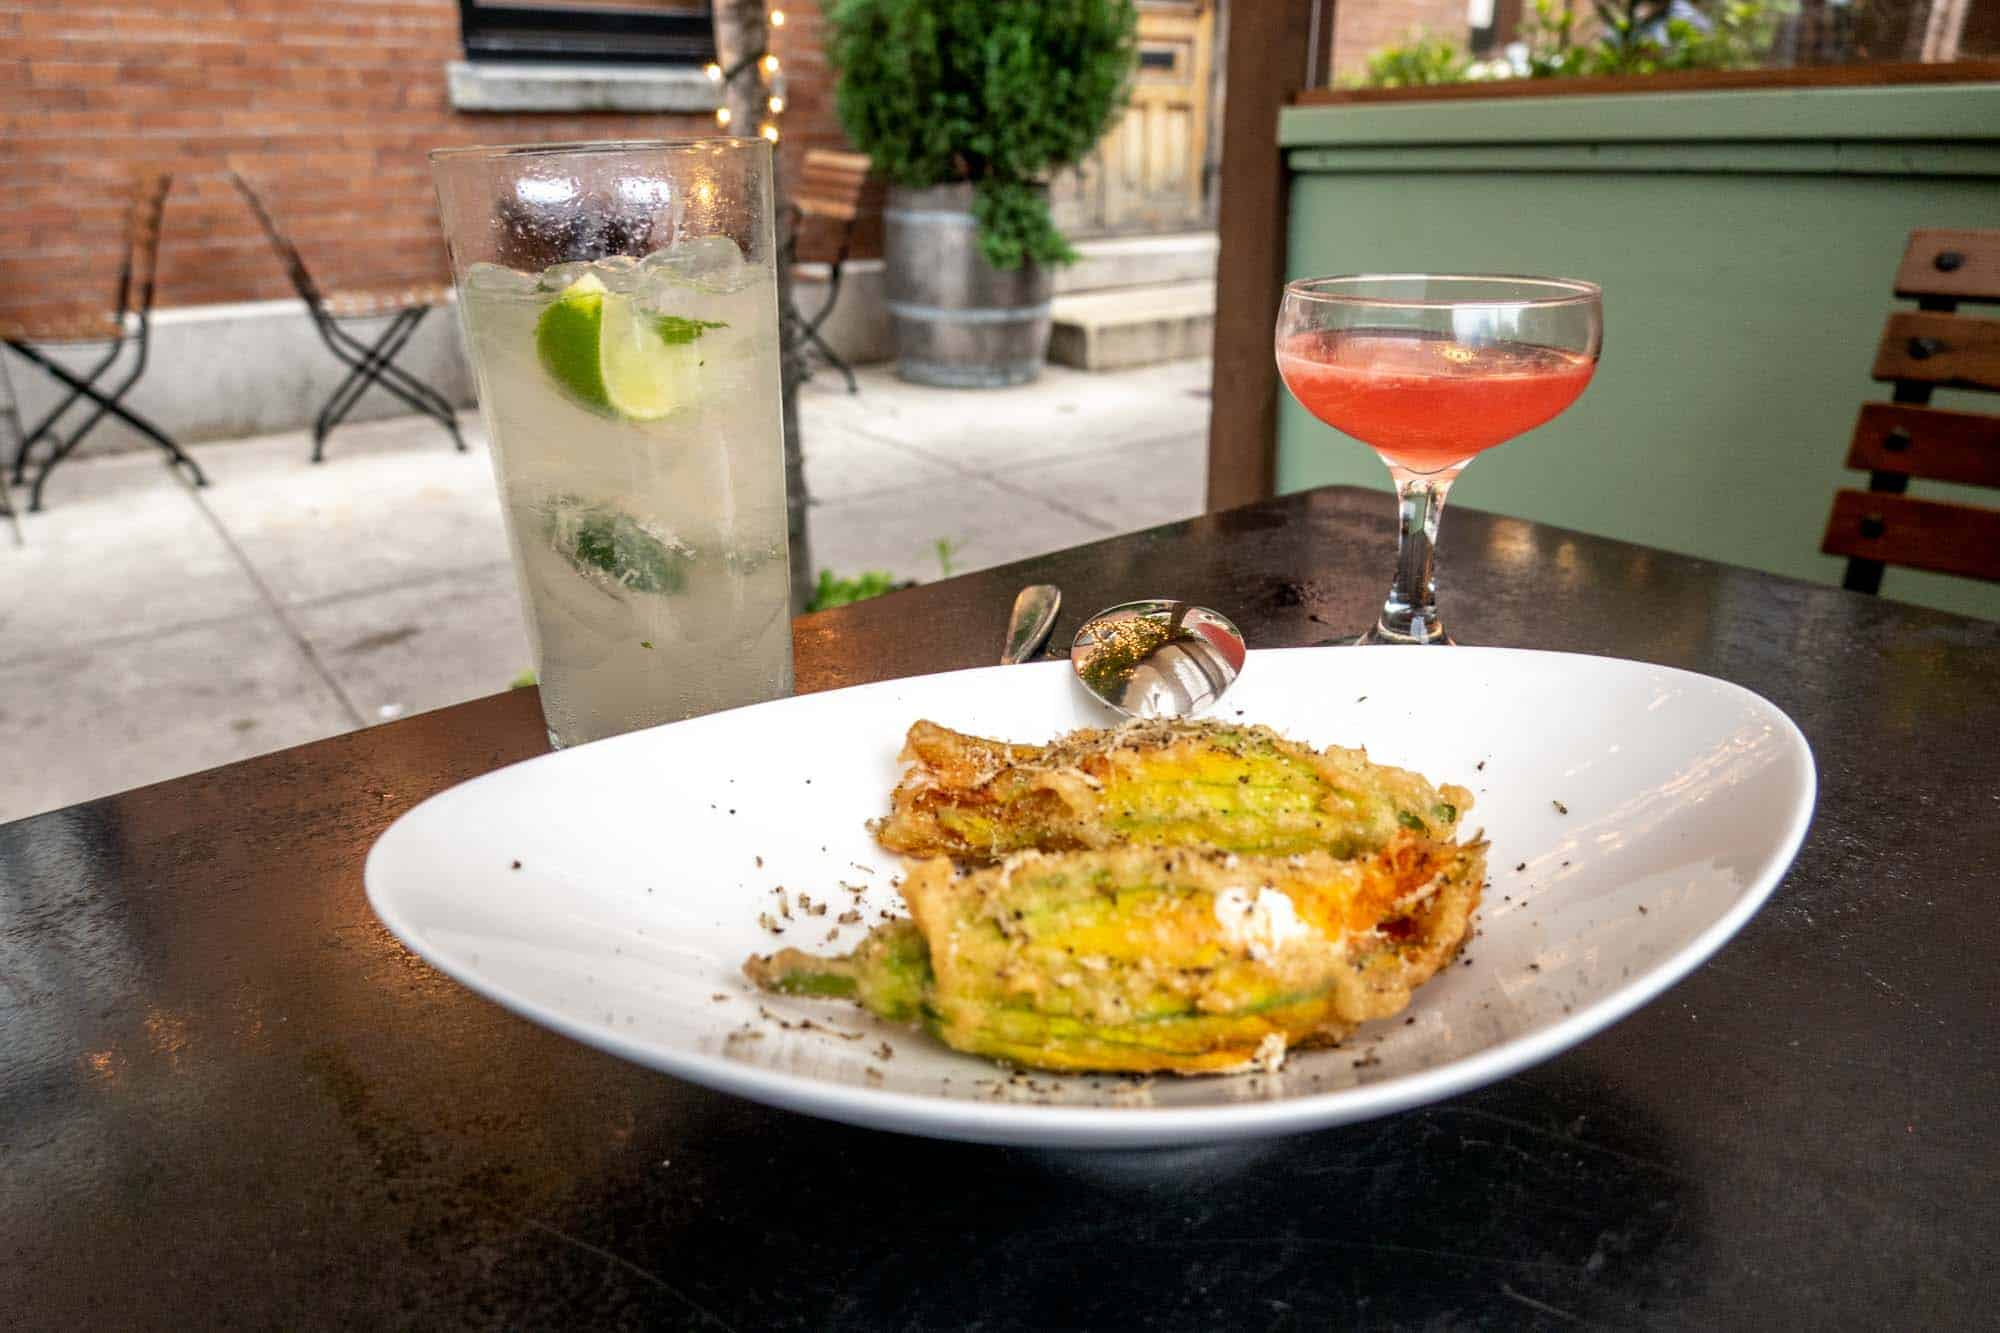 Fried zucchini blossoms on a plate beside two cocktails